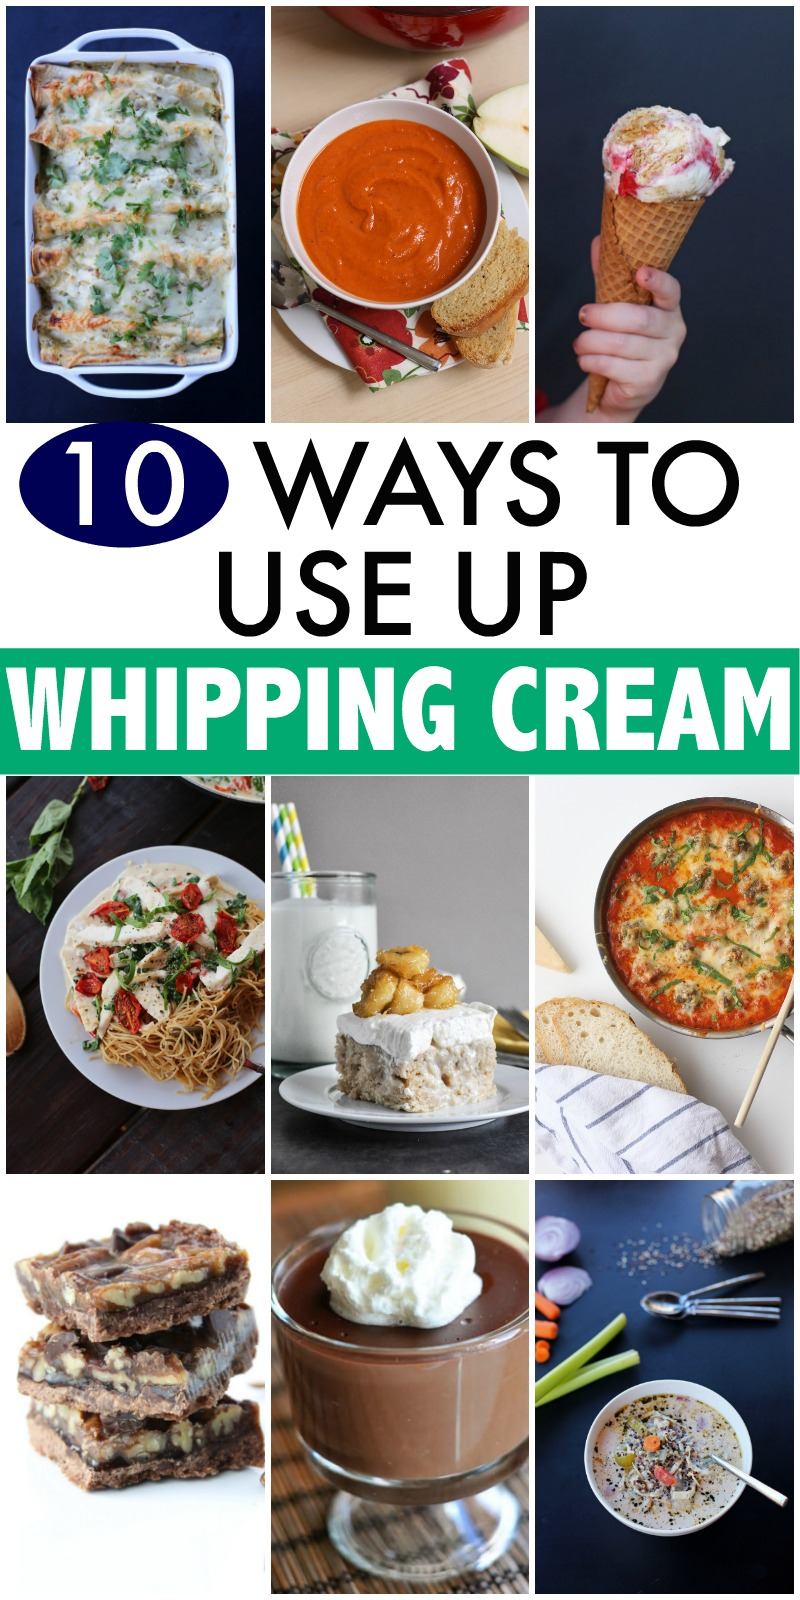 ways to use up whipping cream